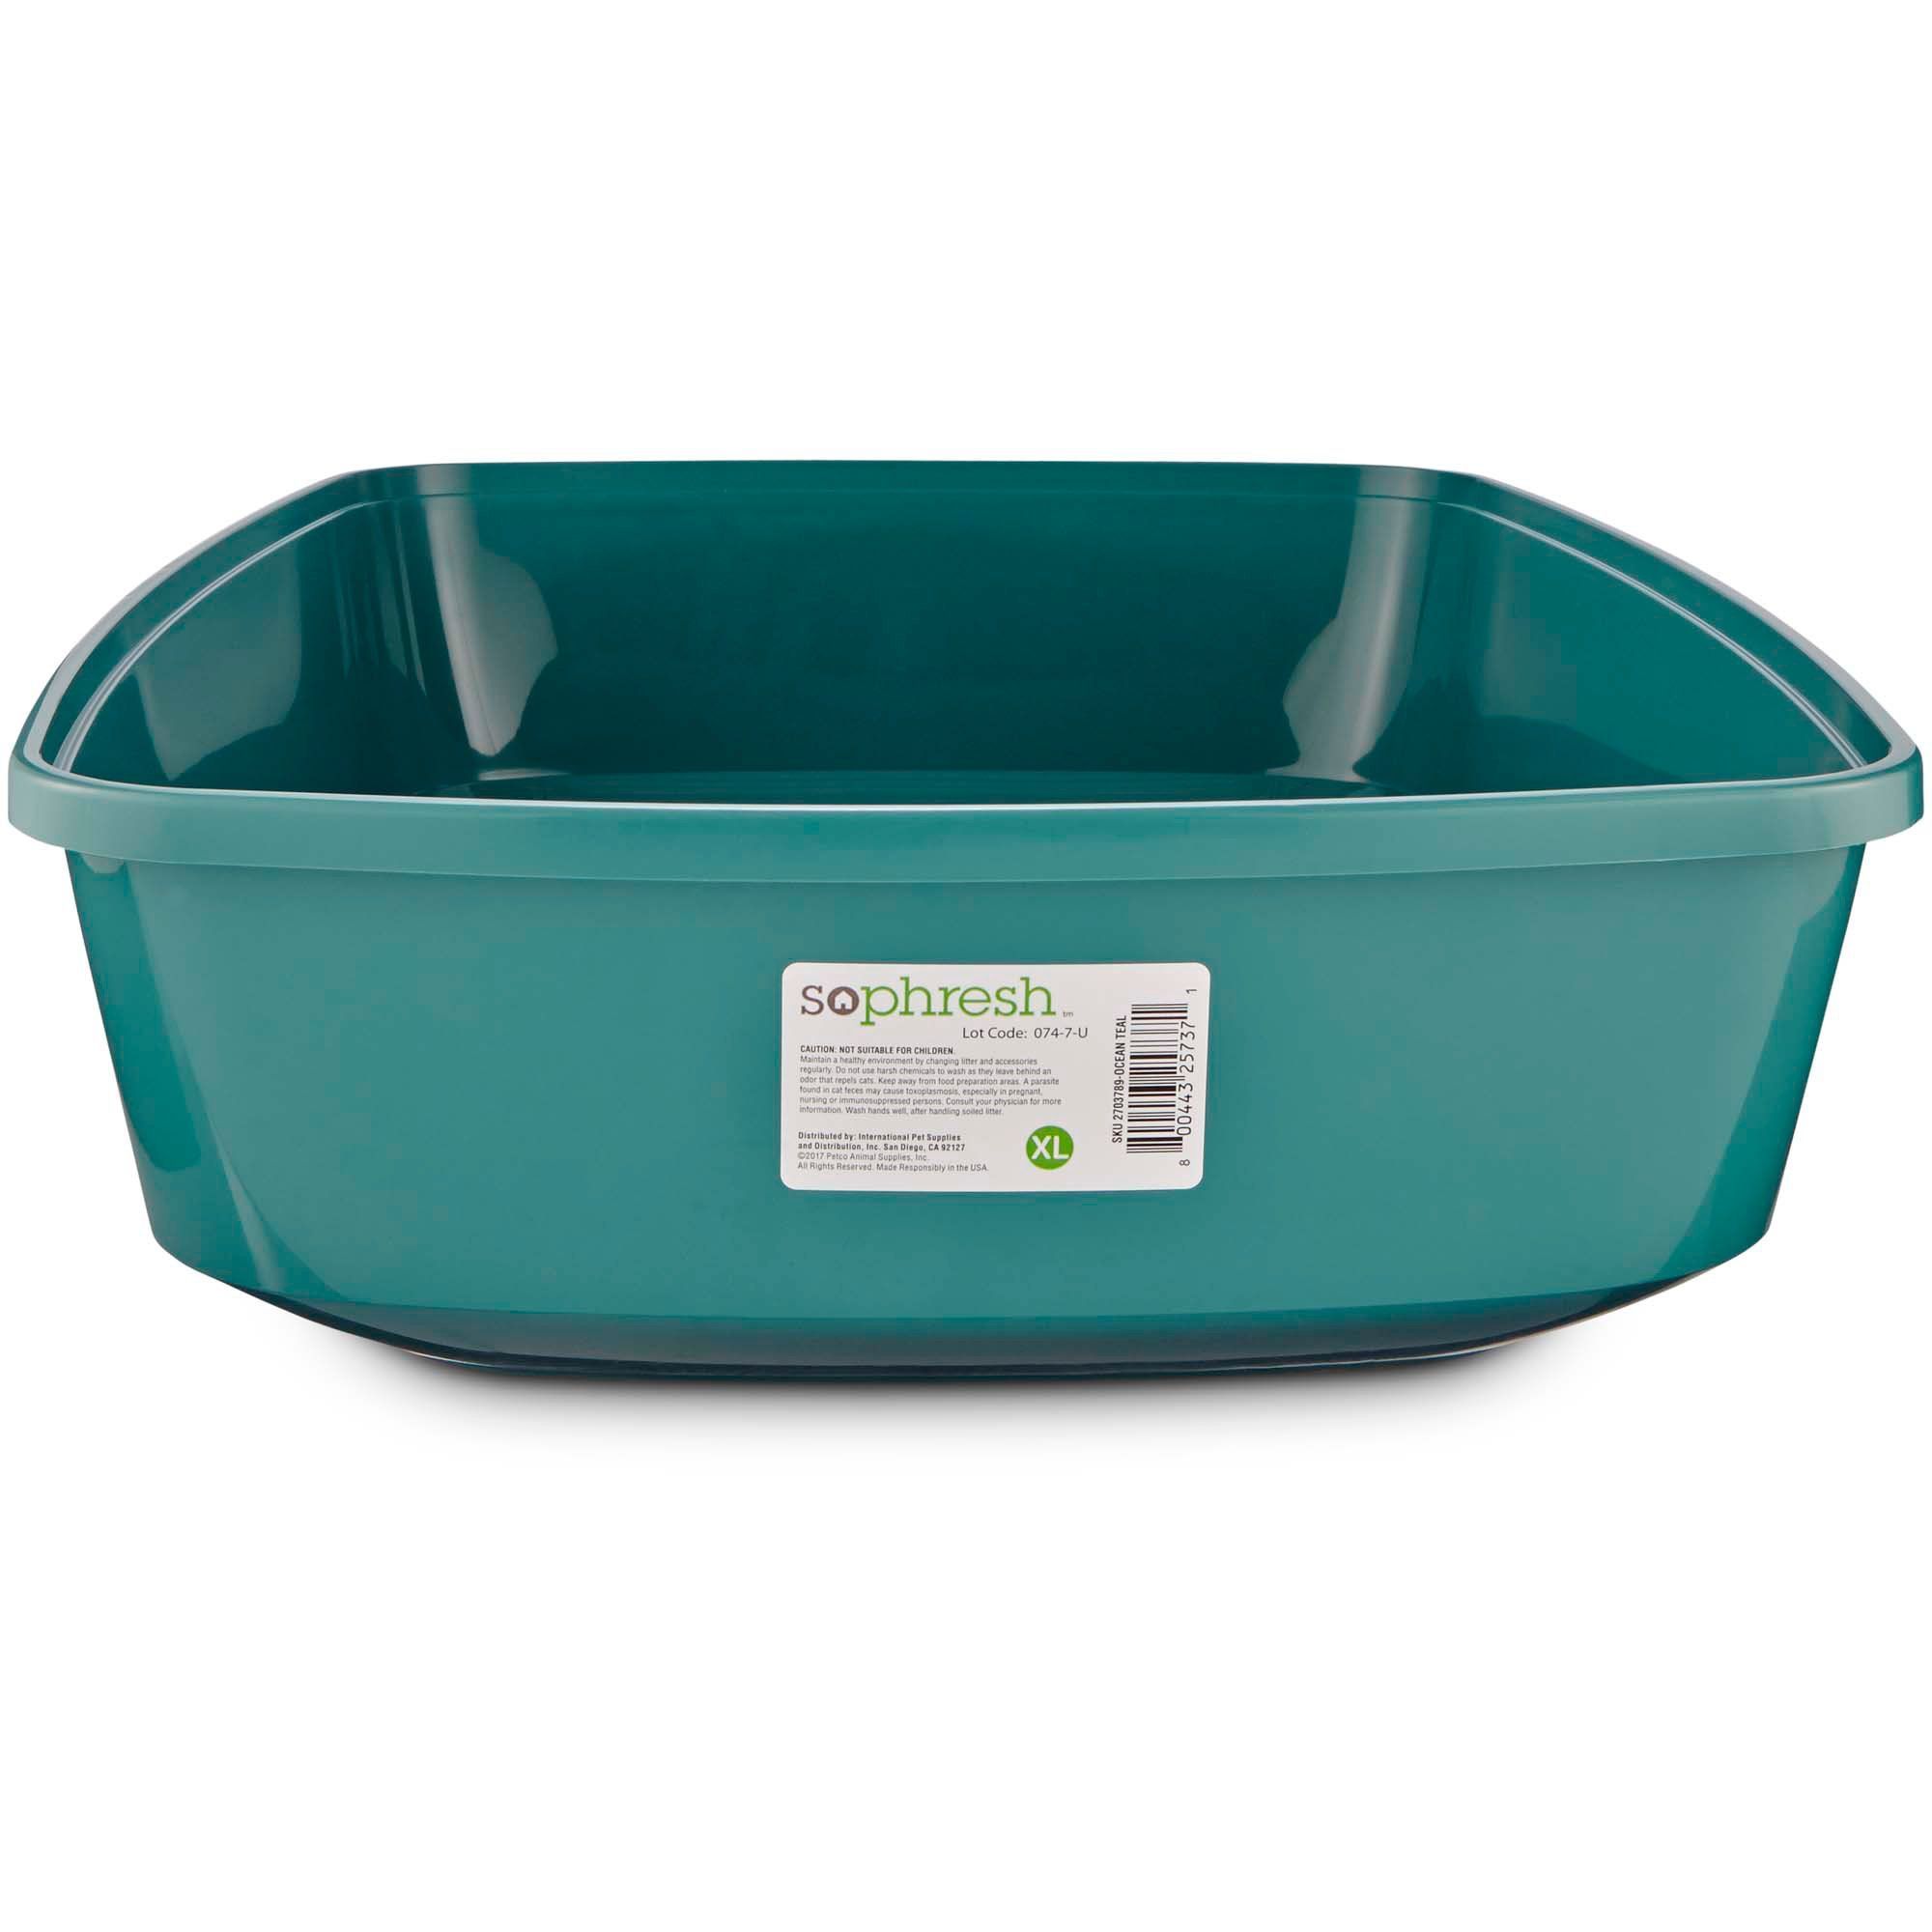 So phresh royal teal open cat litter box petco for Dog litter box petco